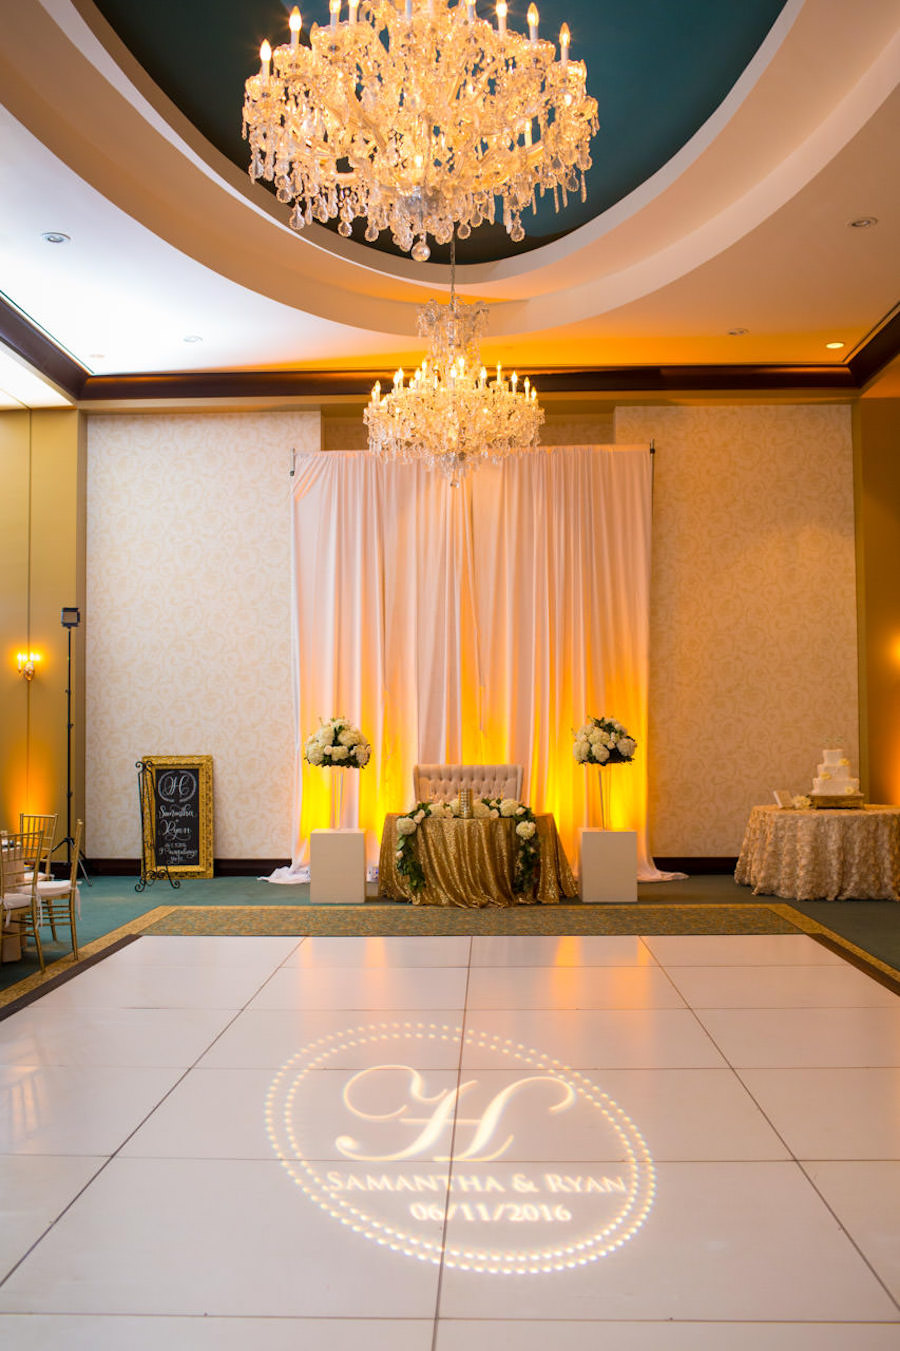 Elegant, White and Gold Wedding Reception Head Table With White Centerpieces on Gold Specialty Linens at Tampa Bay Wedding Ceremony and Reception Venue The Palmetto Club | Wedding Photographer Jeff Mason Photography